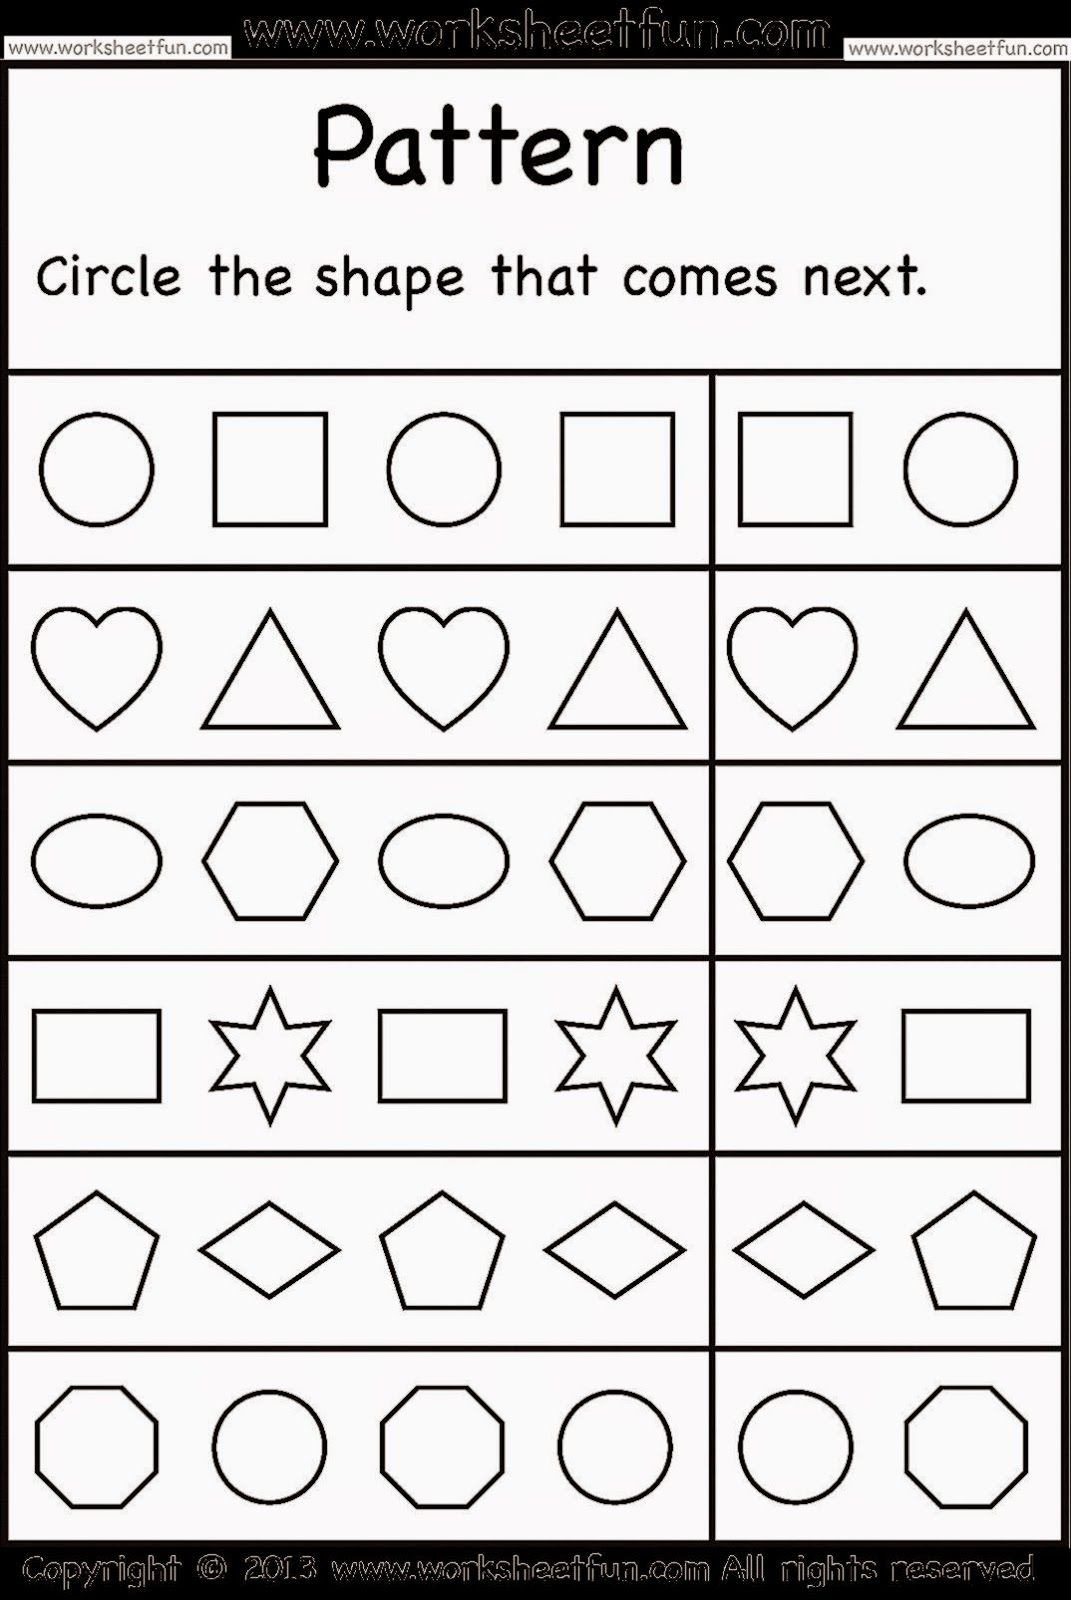 Geometric Shape Pattern Worksheets Worksheetfun Loads Of Free Printable Worksheets for